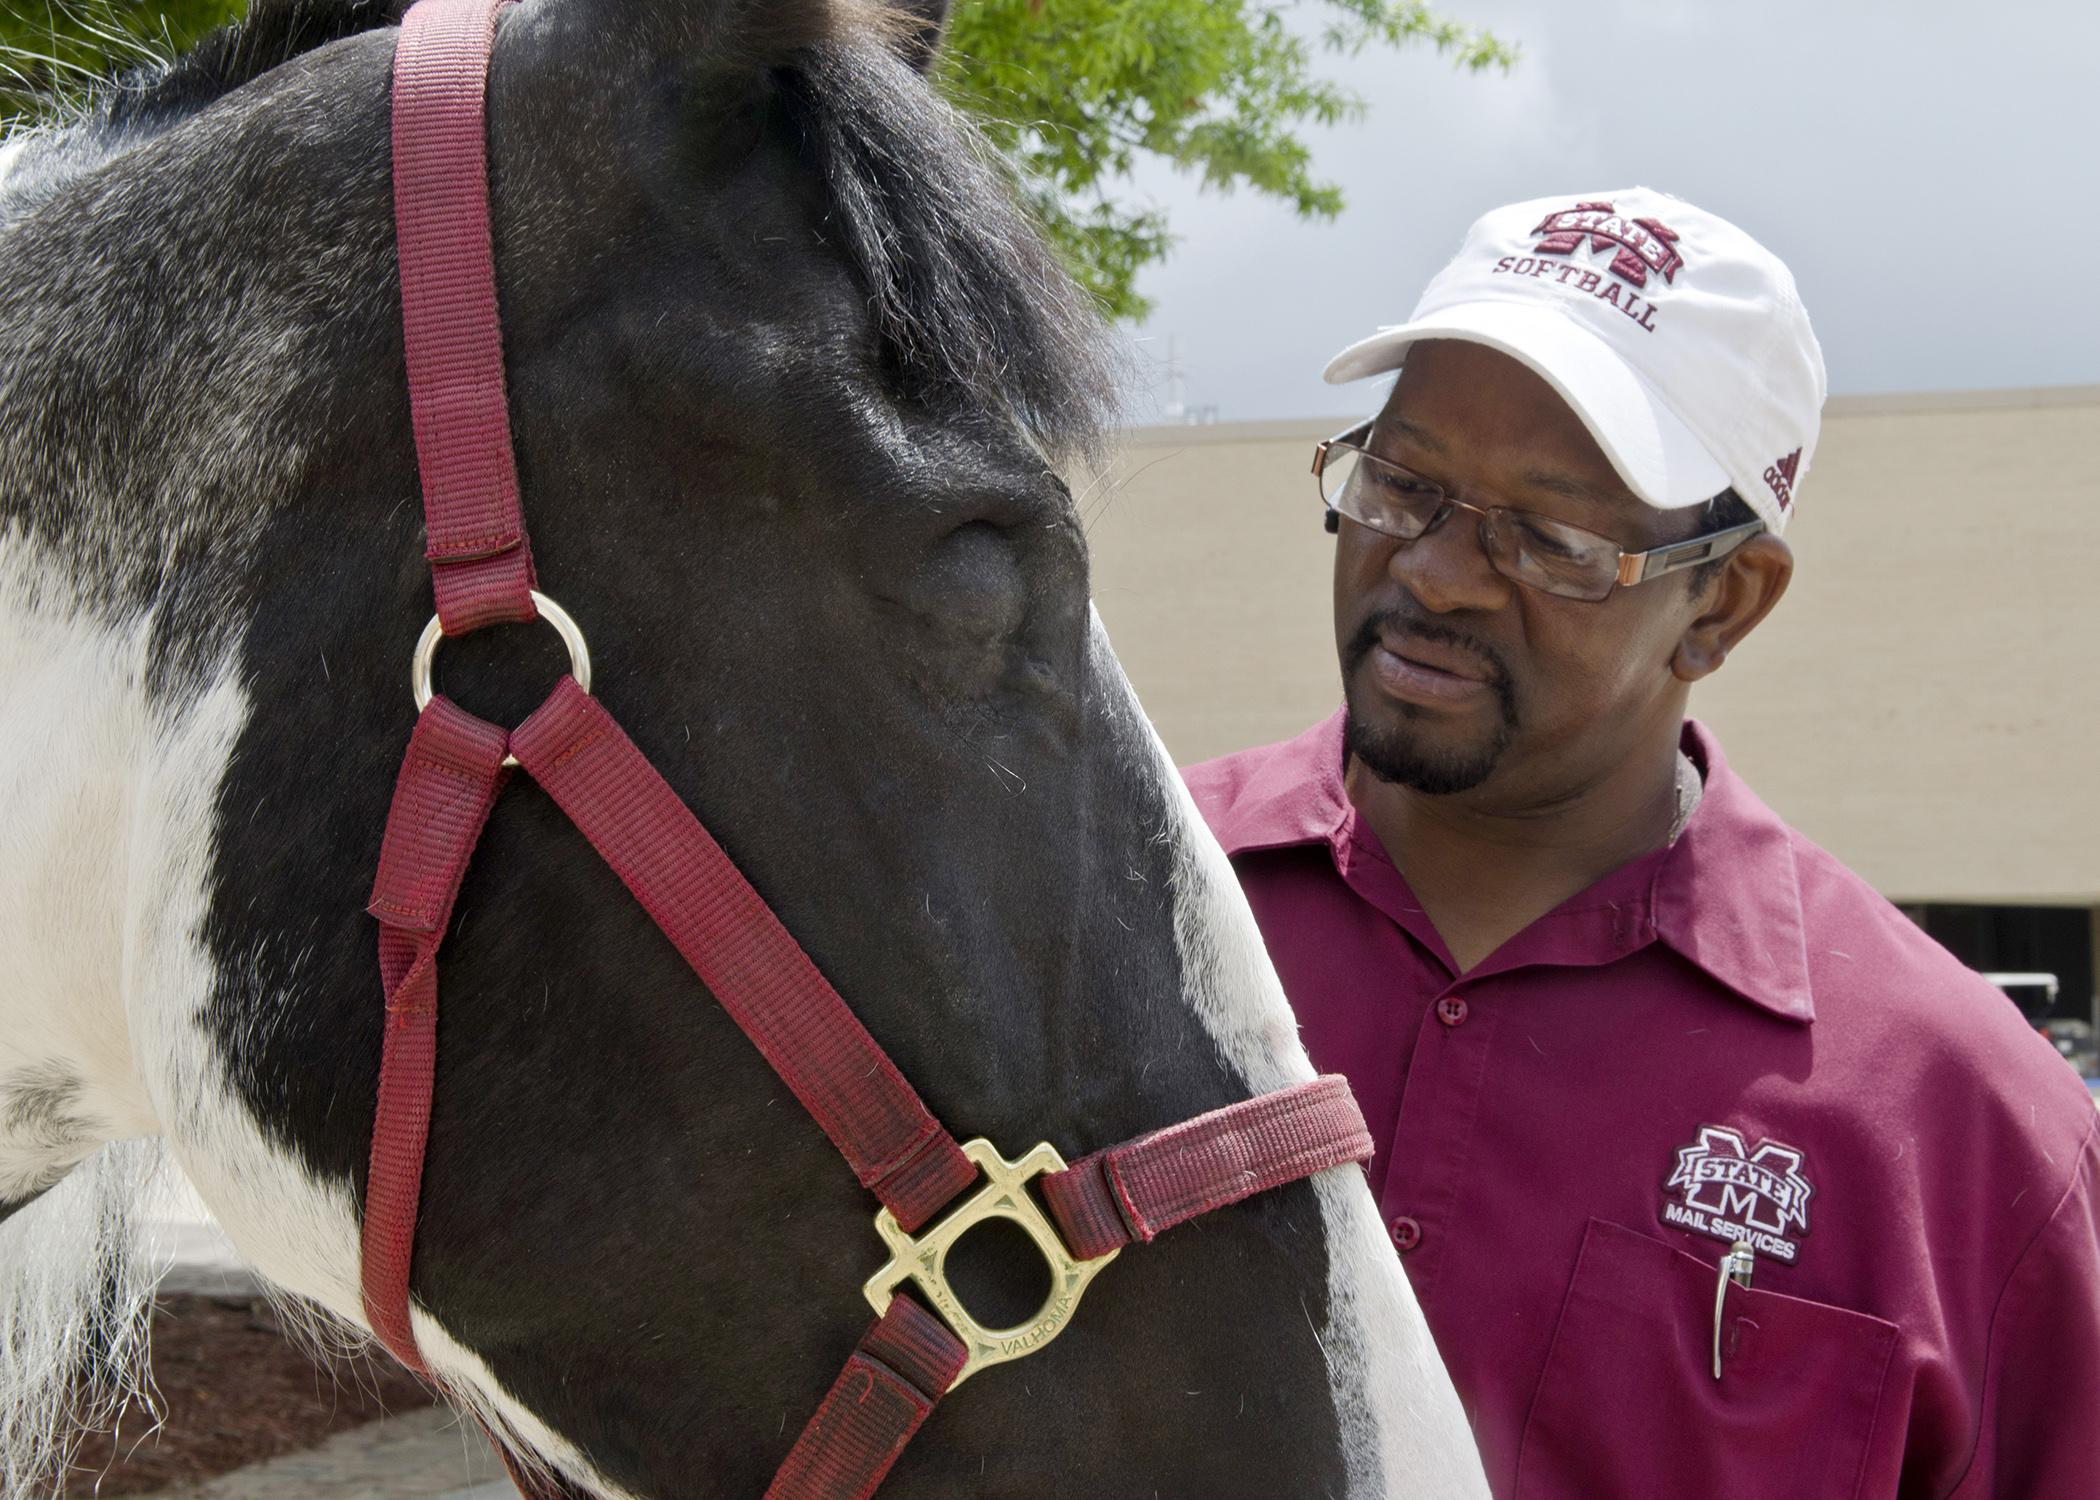 Tender, a horse owned by Henry Wilson of Columbus, is one of the first patients to benefit from a new operating procedure developed by veterinary professors at the Mississippi State University College of Veterinary Medicine. The method minimizes surgical stress and complications. (Photo by MSU College of Veterinary Medicine/Tom Thompson)